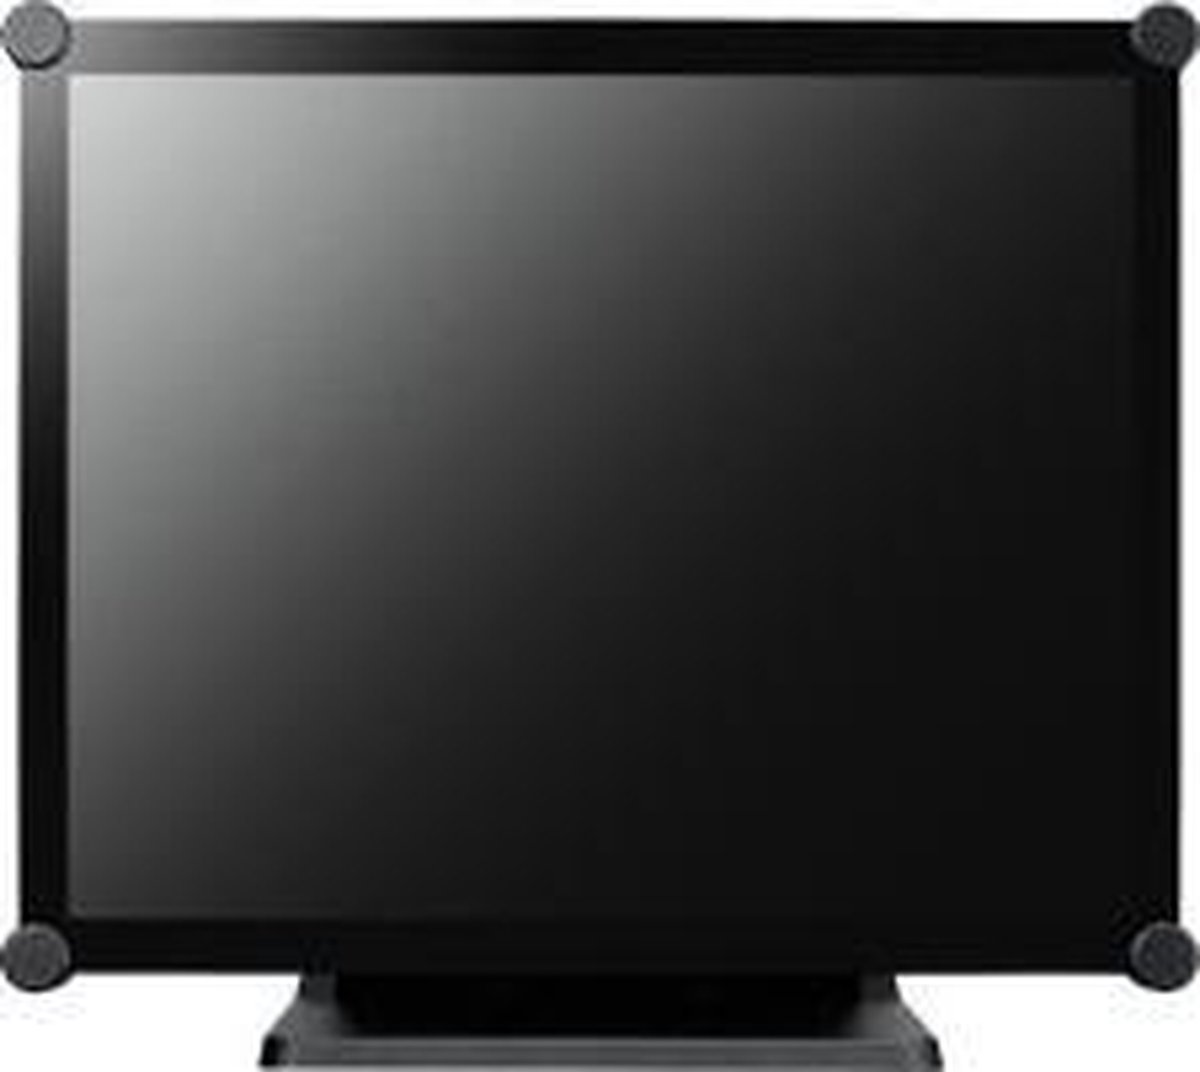 Incorporates Projected Capacitive Touch. 17i. 1280*1024. LED.10 touches. 250cd.1000:1. 3ms (GTG). 170/160. IP65 Flush front